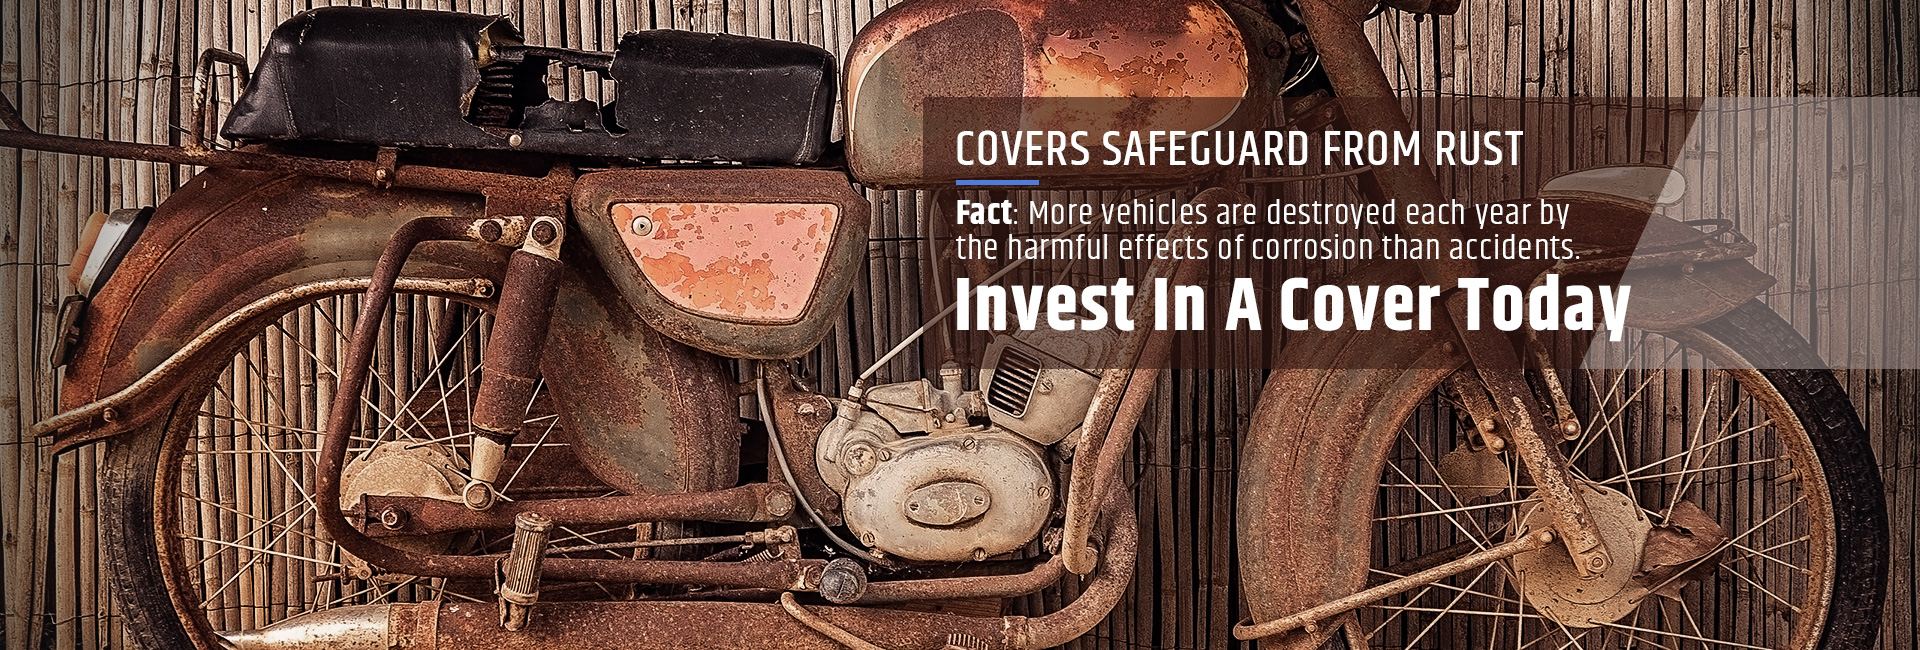 Covers safeguard from rust